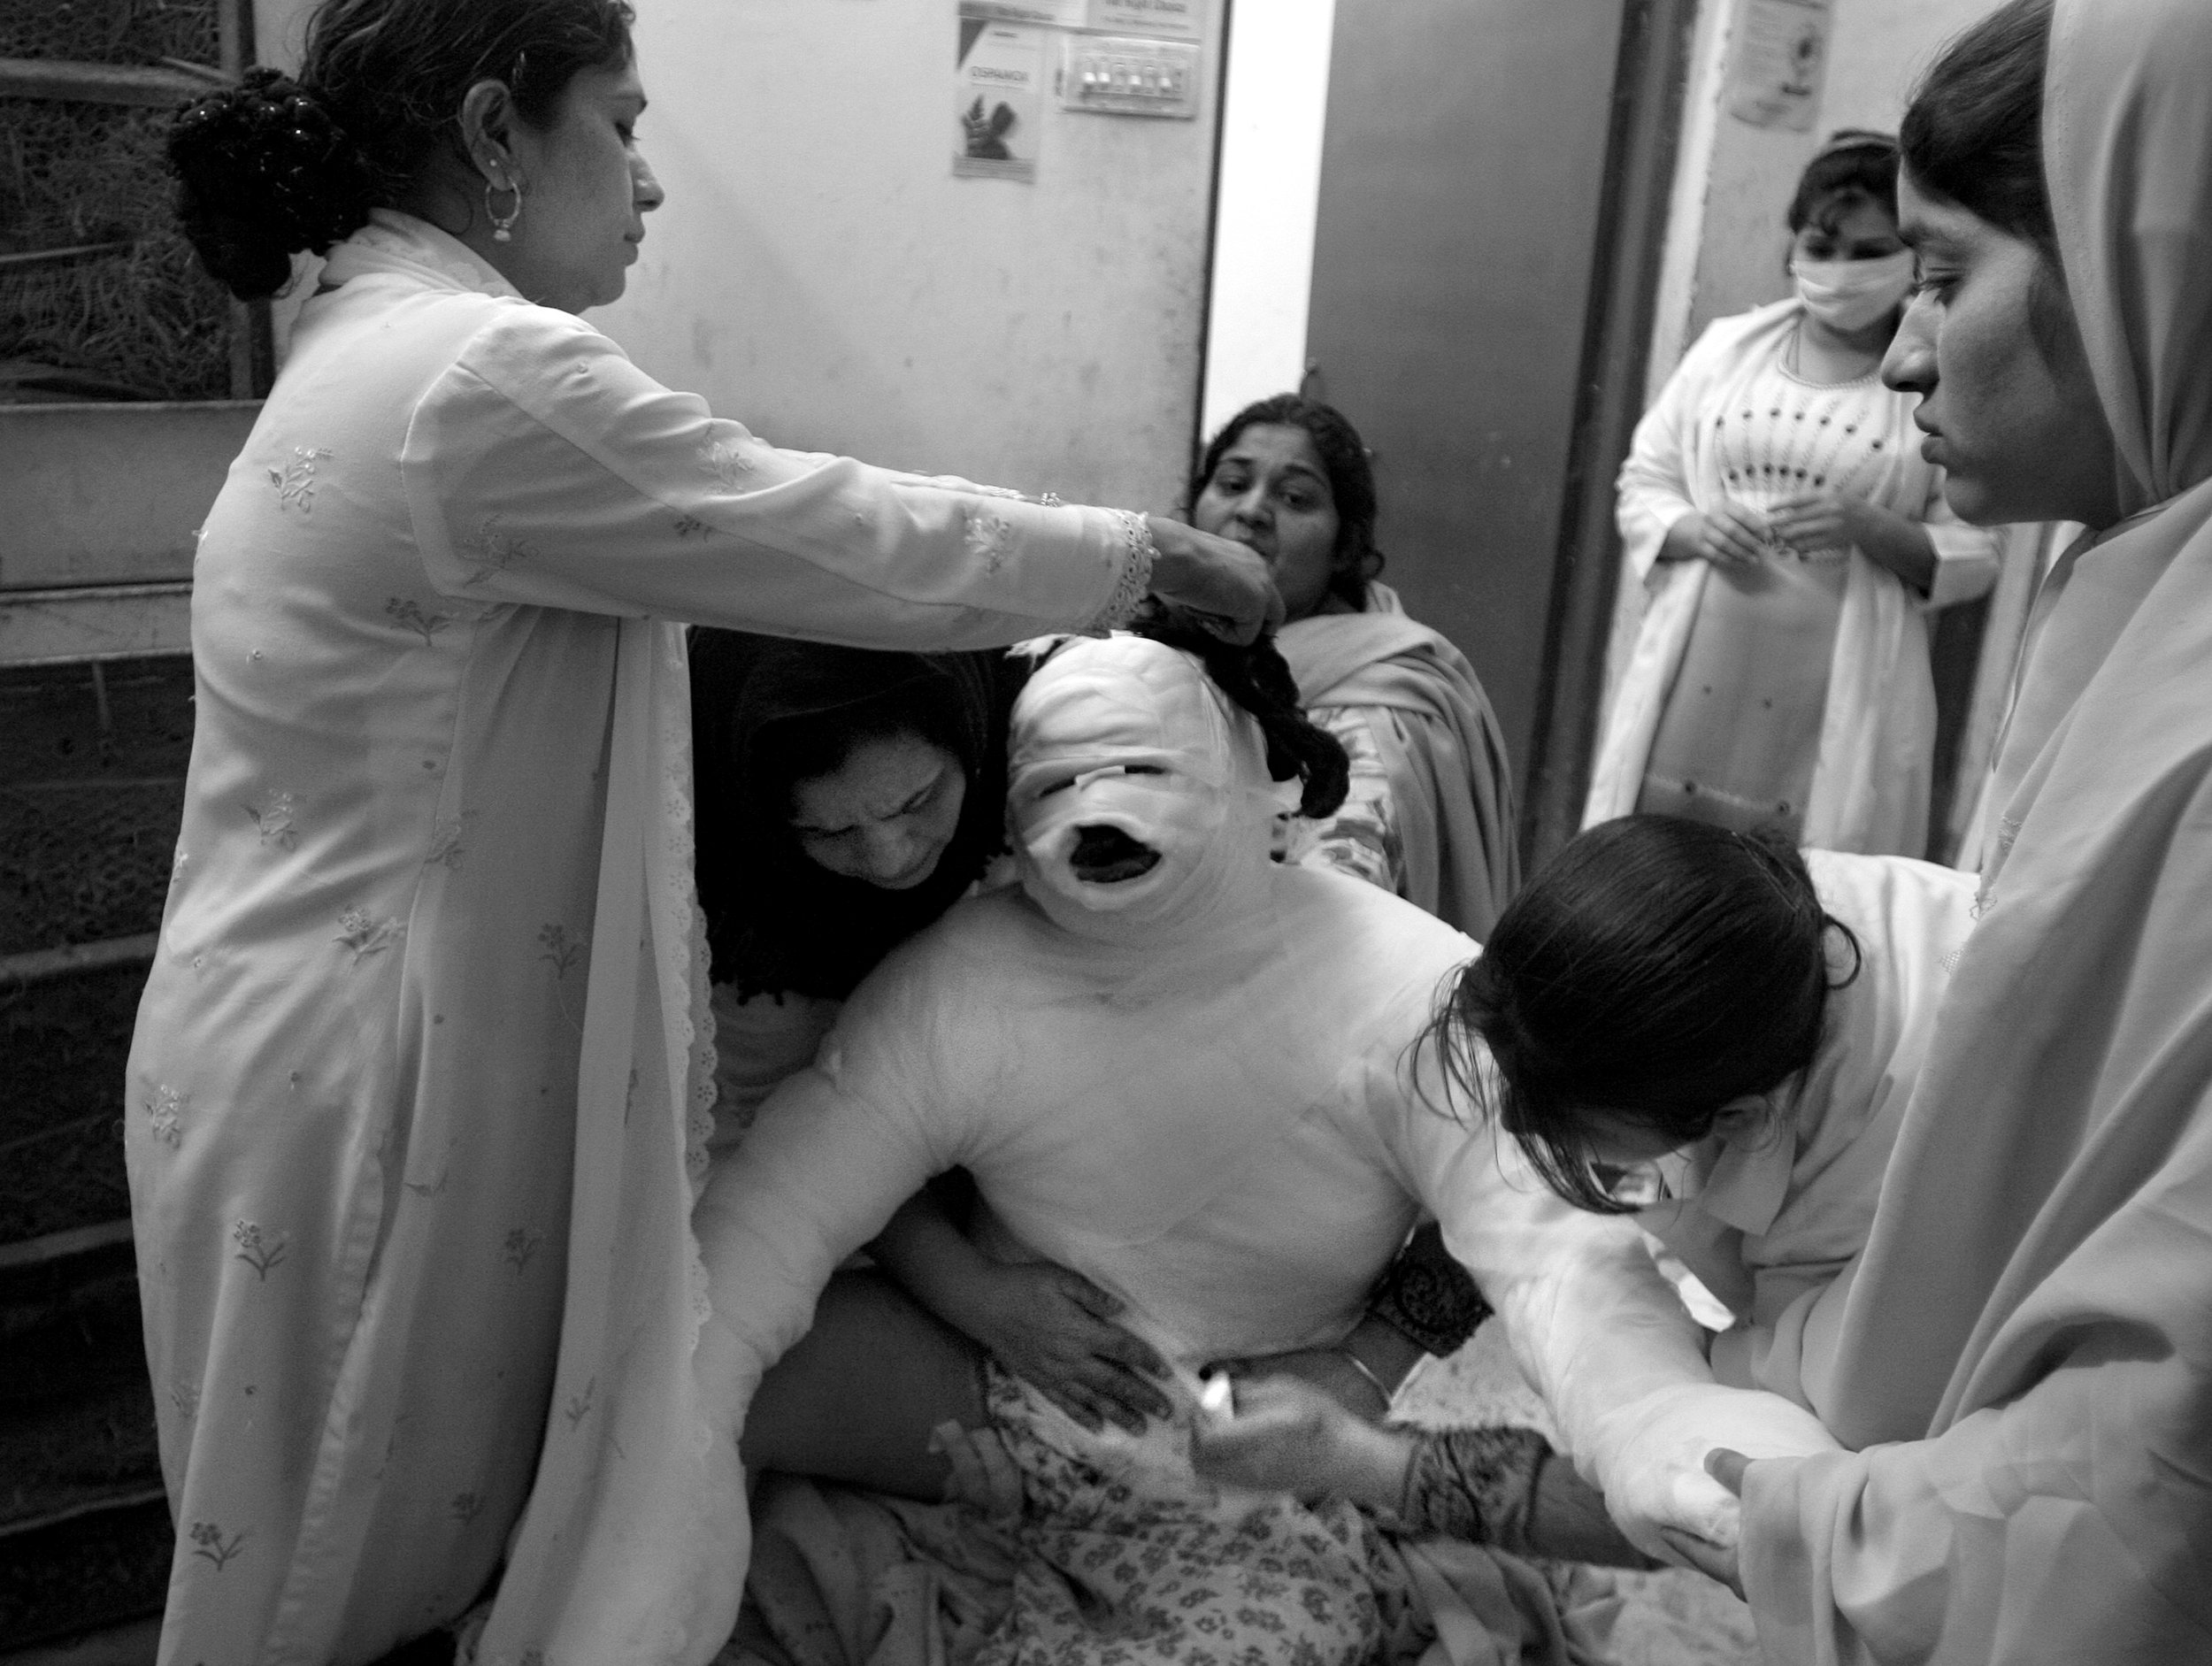 24-year-old Roshan, was burned from the waist up two days prior when, according to her sisters, she set herself on fire after quarreling with her husband. She is being treated at the Shafik Aziz Hospital which is a tiny four room free burn clinic in Lahore, Pakistan.